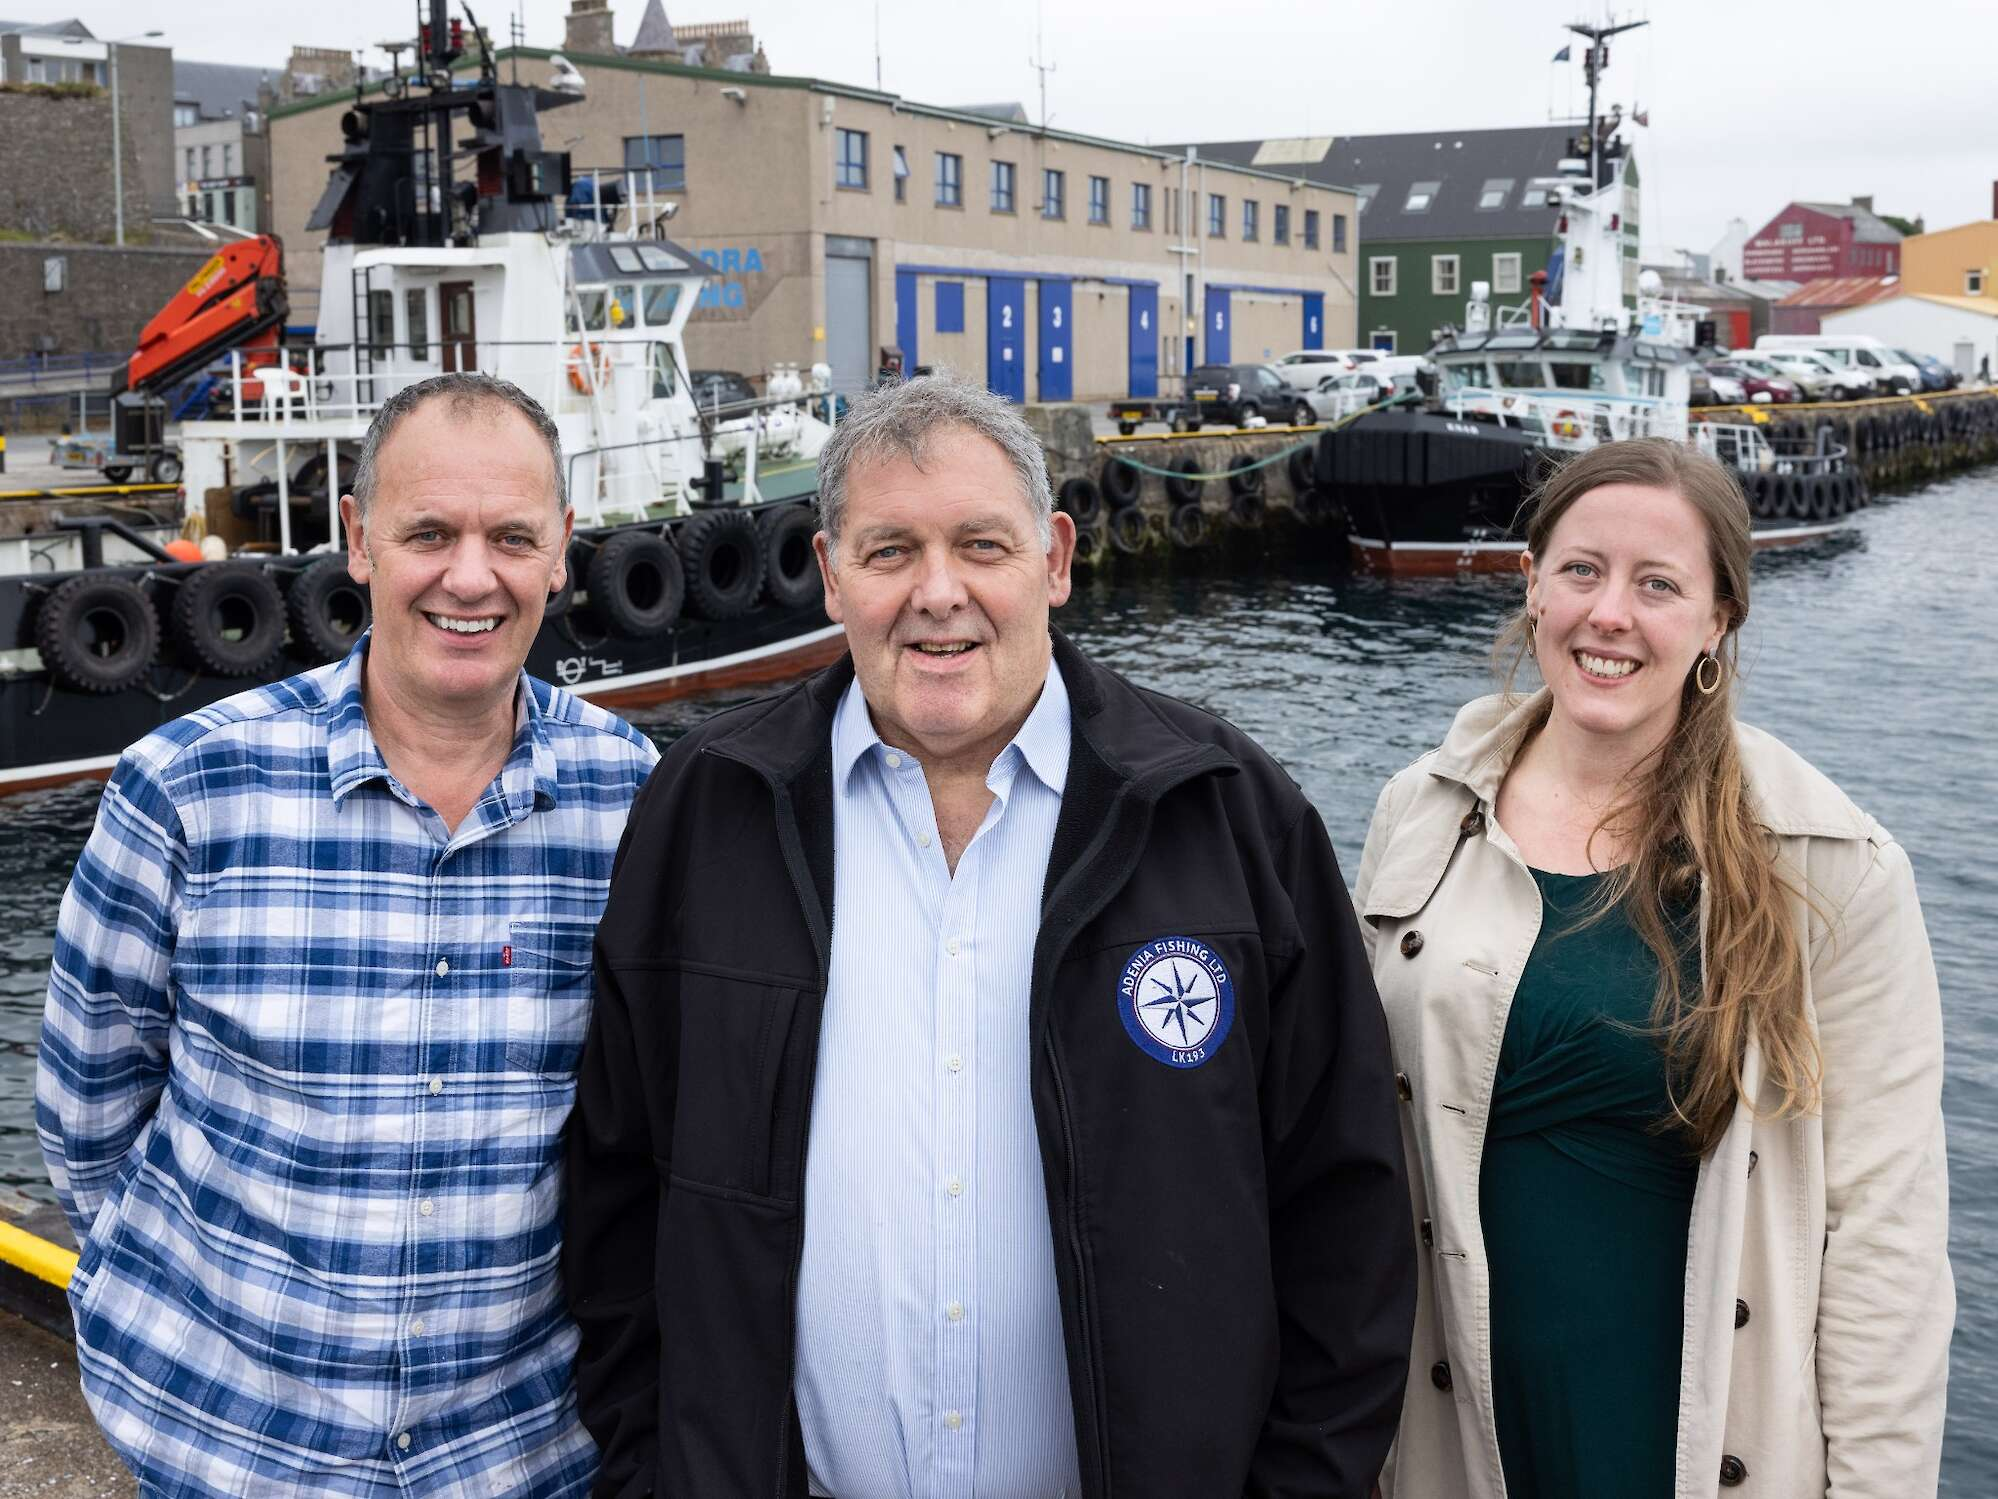 George Anderson has been appointed as Chairman and John Henderson has been reappointed as Deputy Chairman of Lerwick Harbour Authority